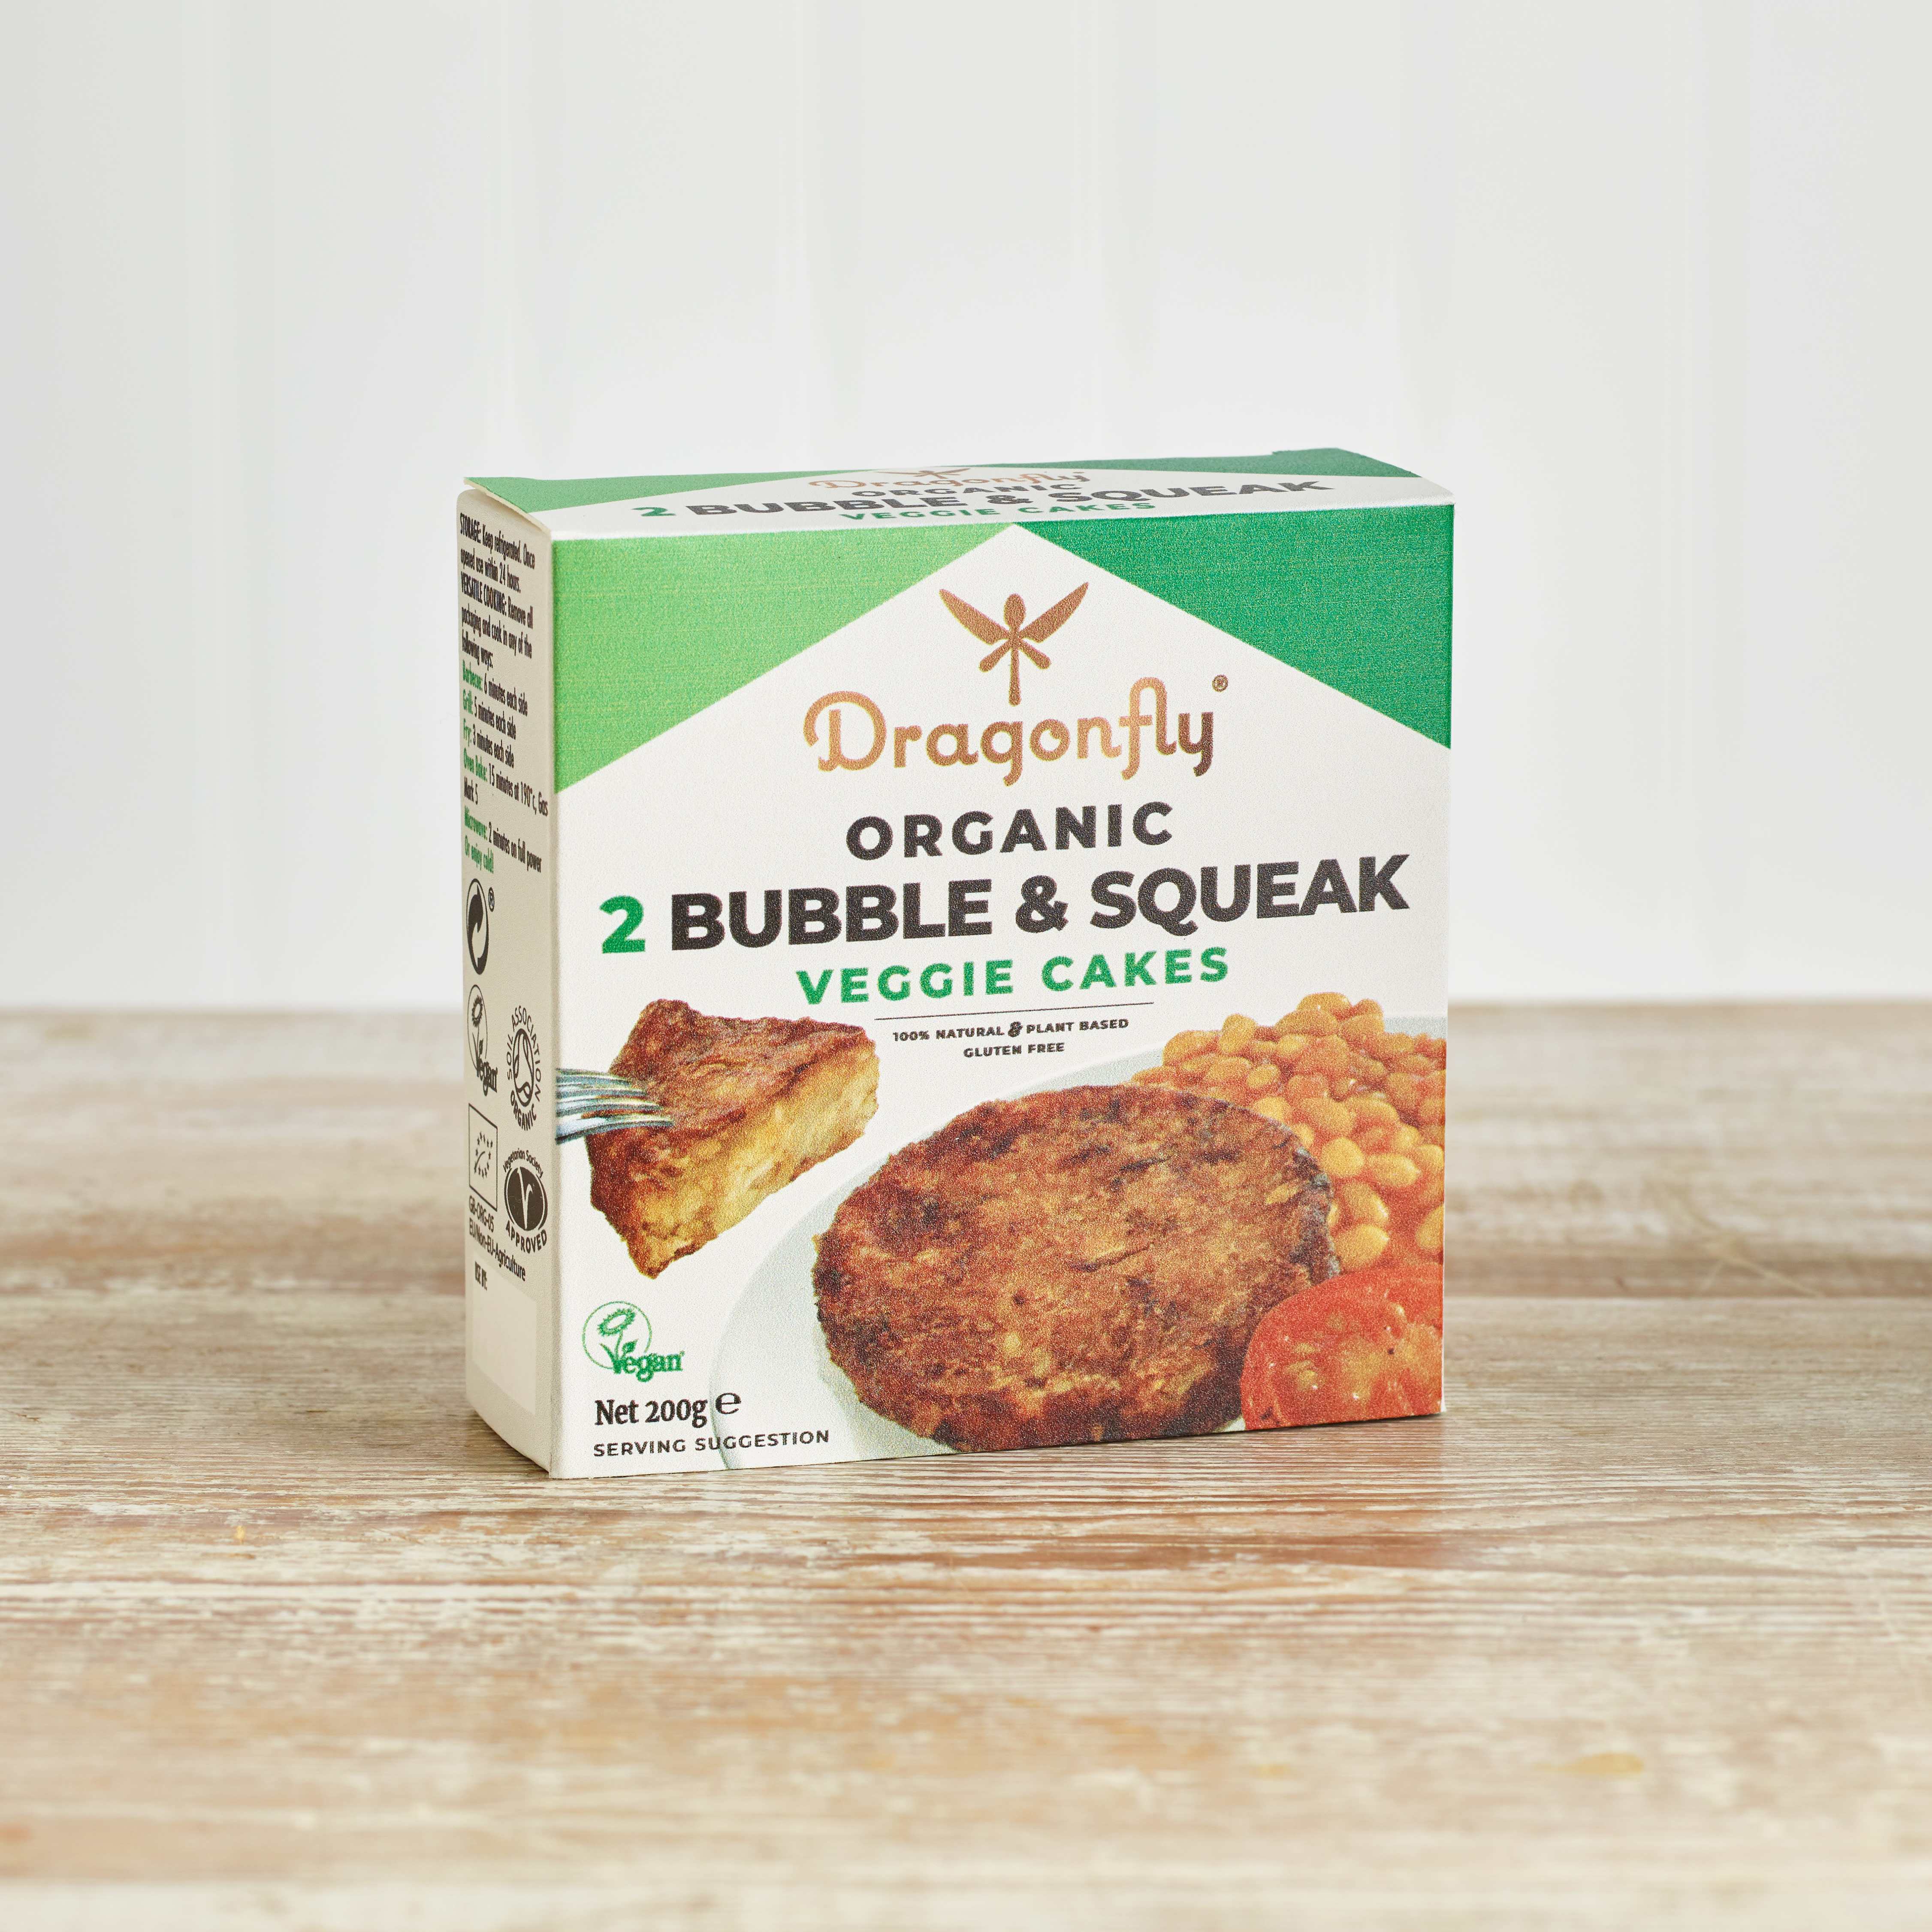 Dragonfly Organic Bubble & Squeak Vegetable Cakes, 2 pack